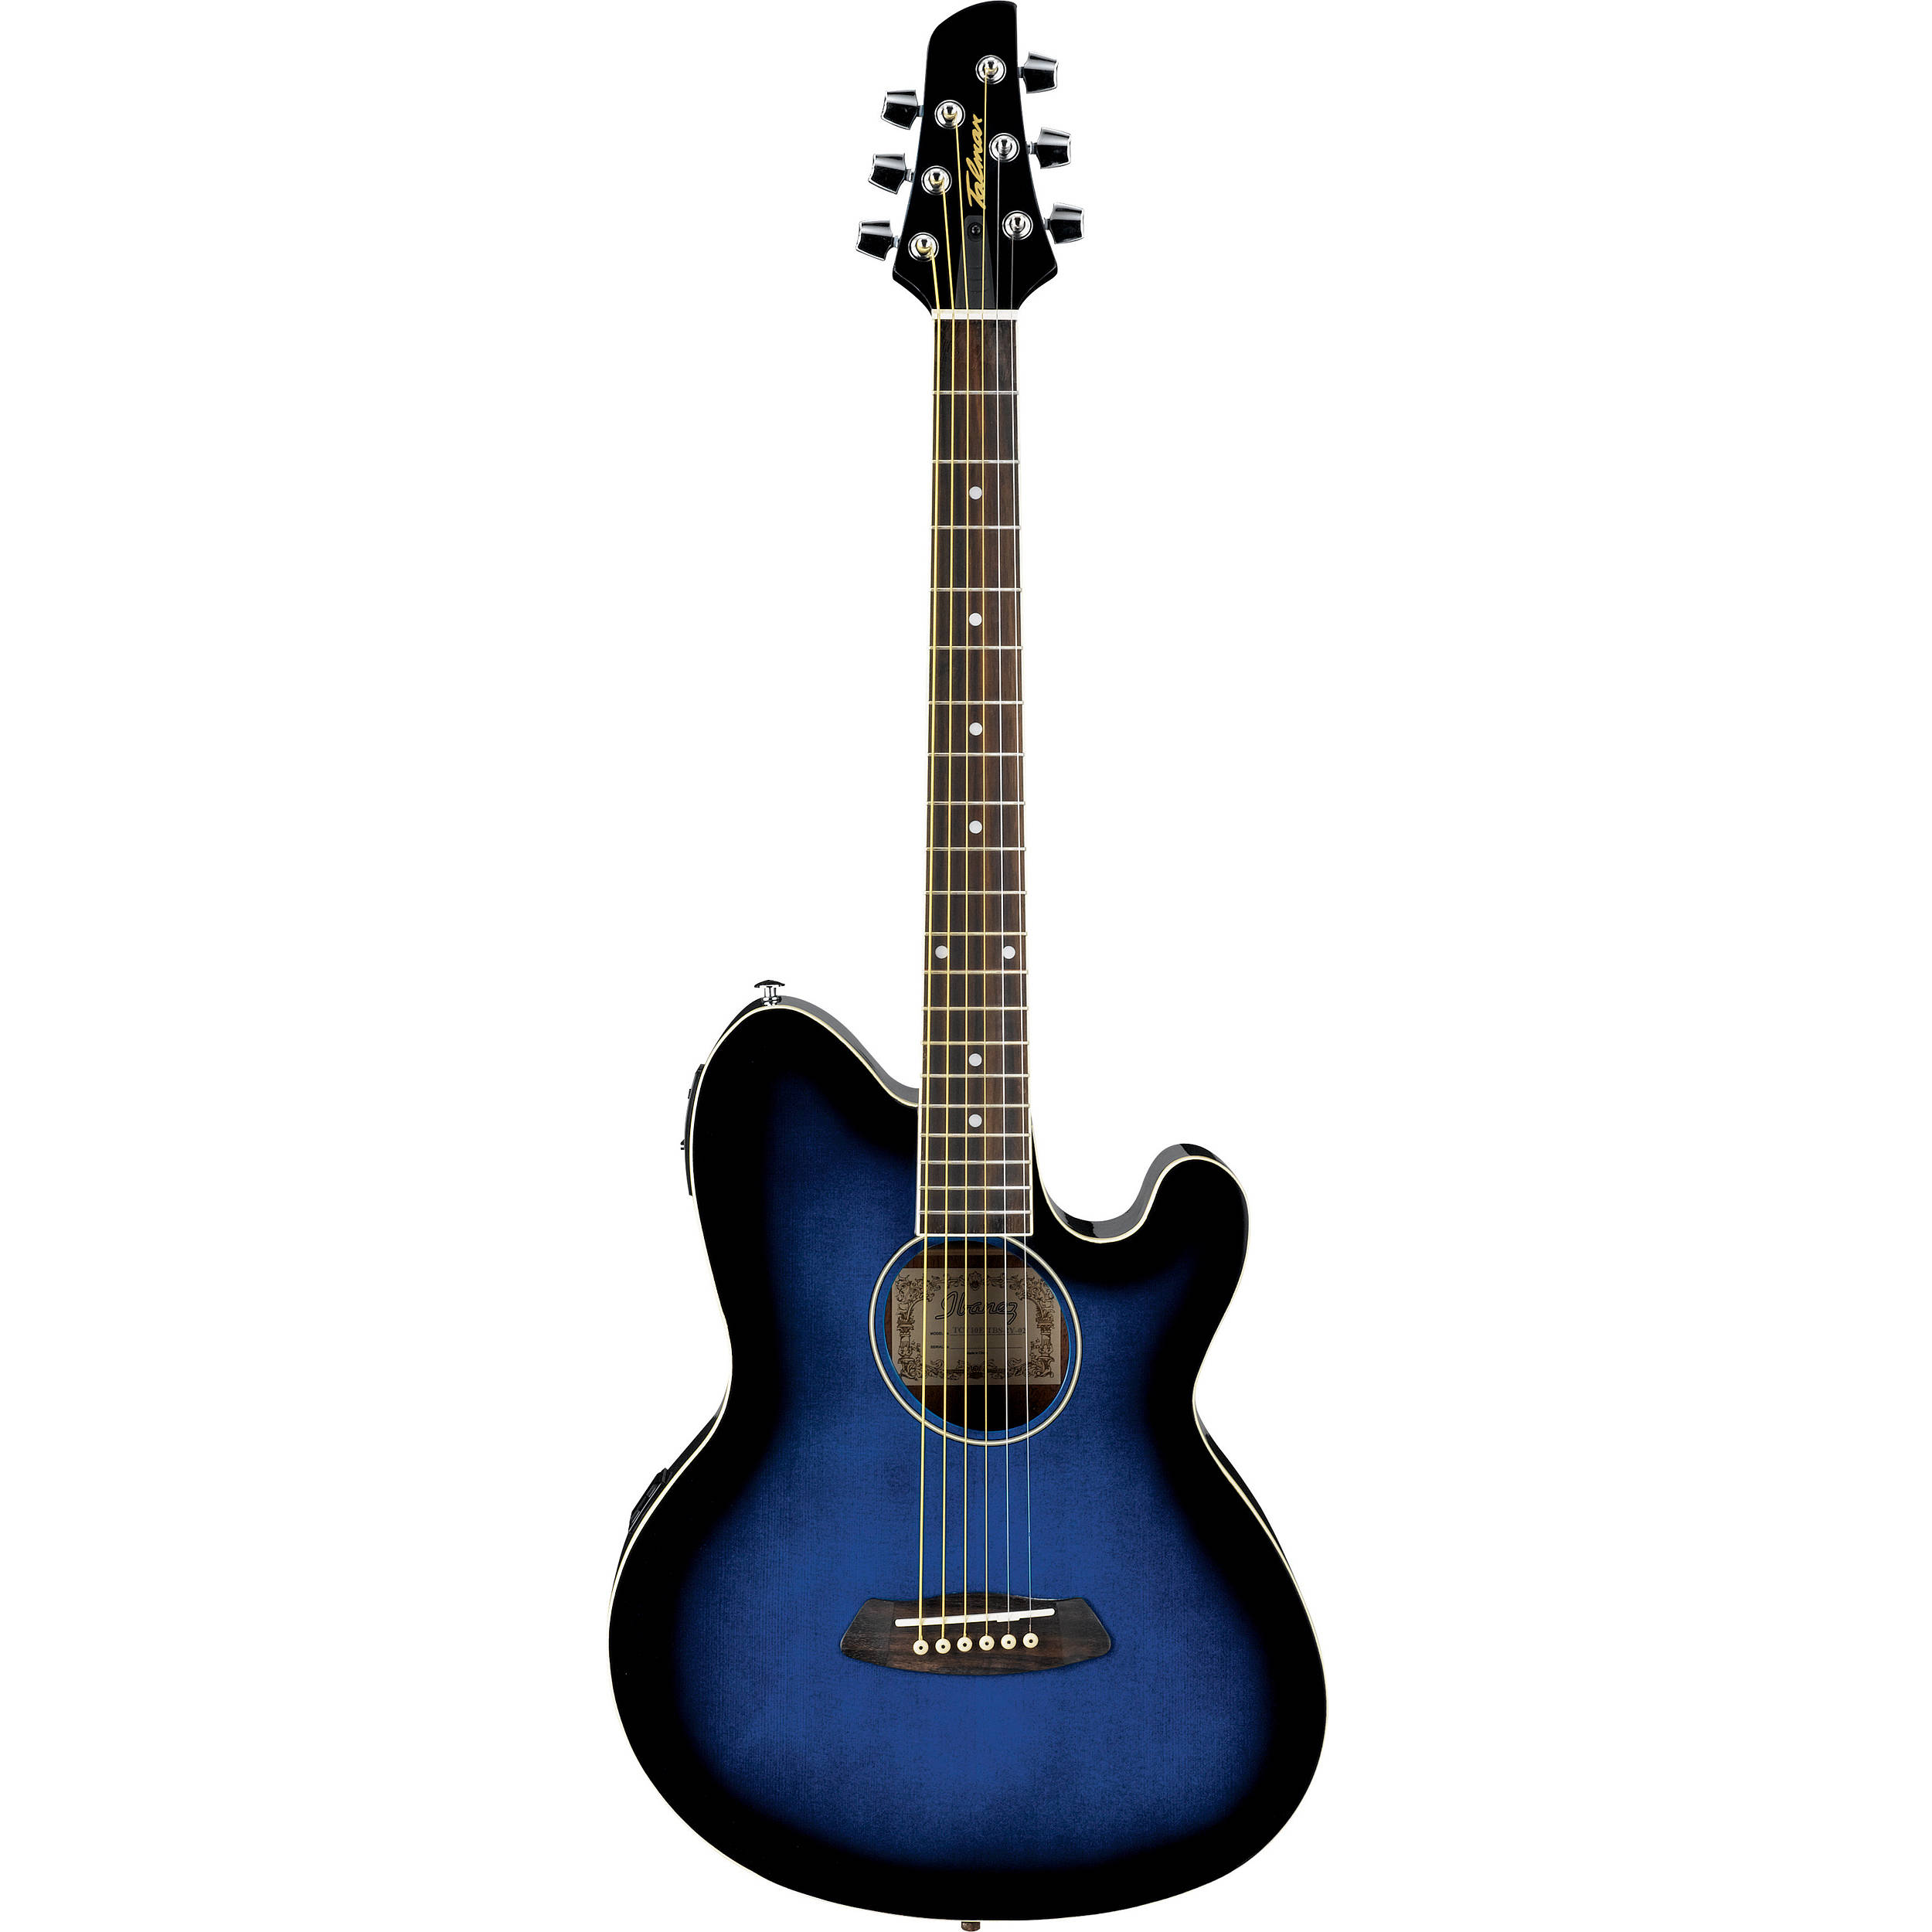 ibanez tcy10e talman series acoustic electric guitar tcy10etbs. Black Bedroom Furniture Sets. Home Design Ideas